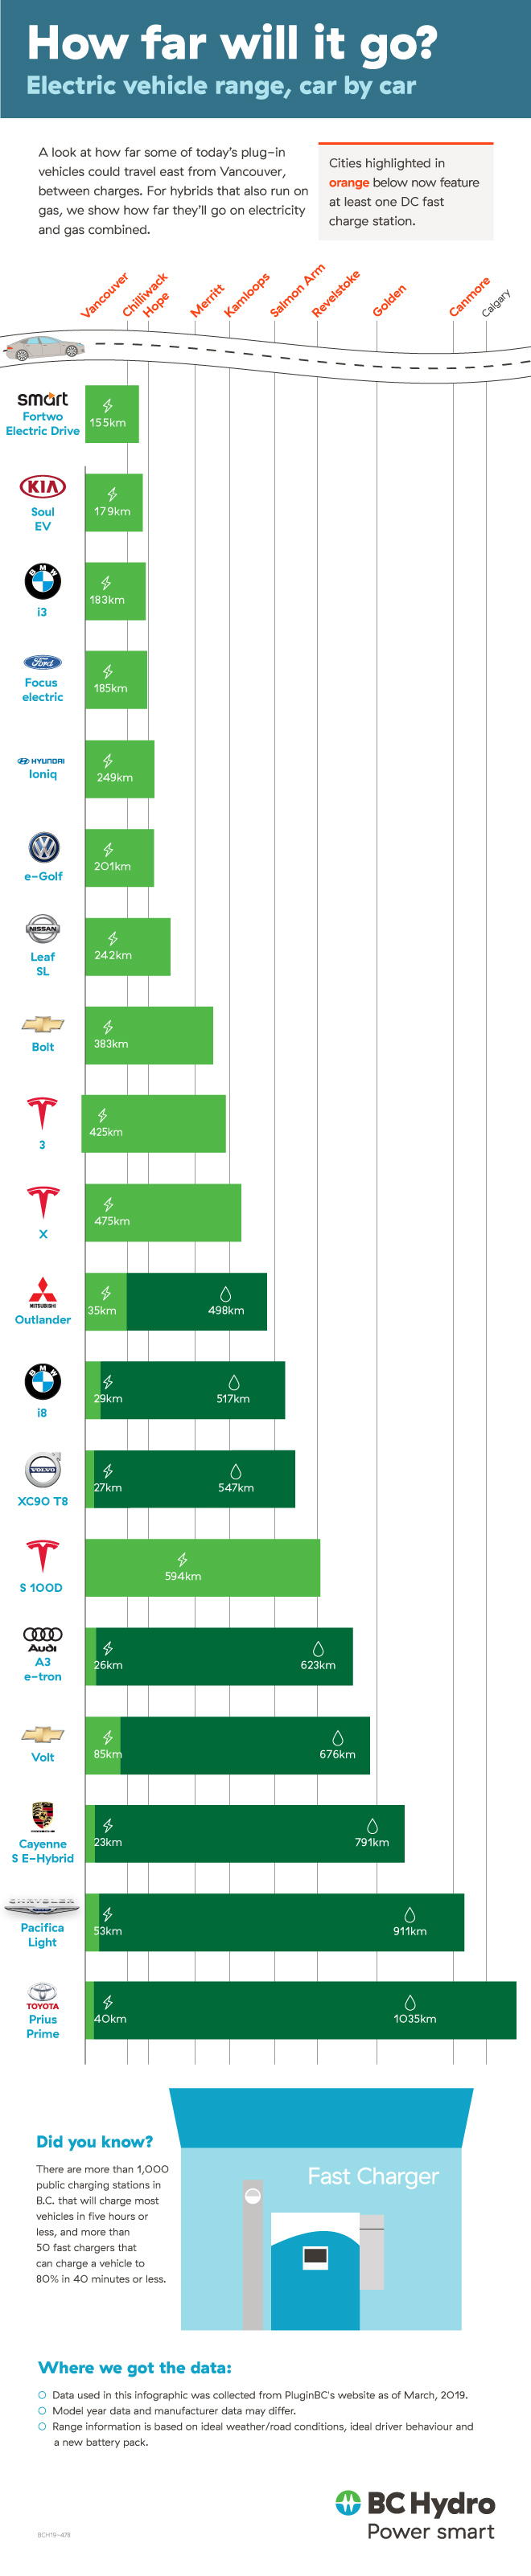 Electric vehicle range comparison 2018